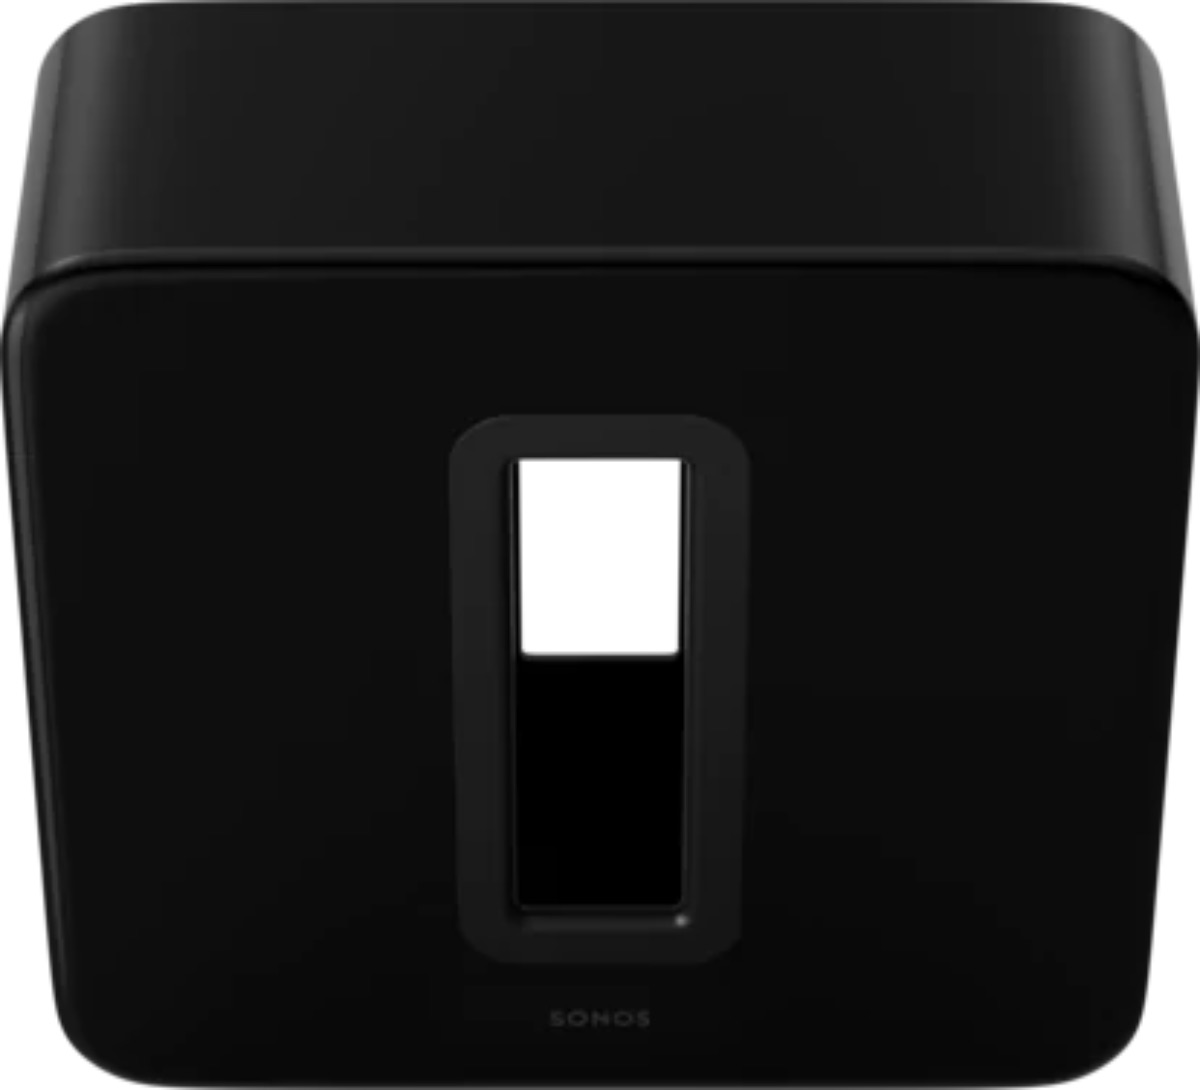 sonos högtalare black friday